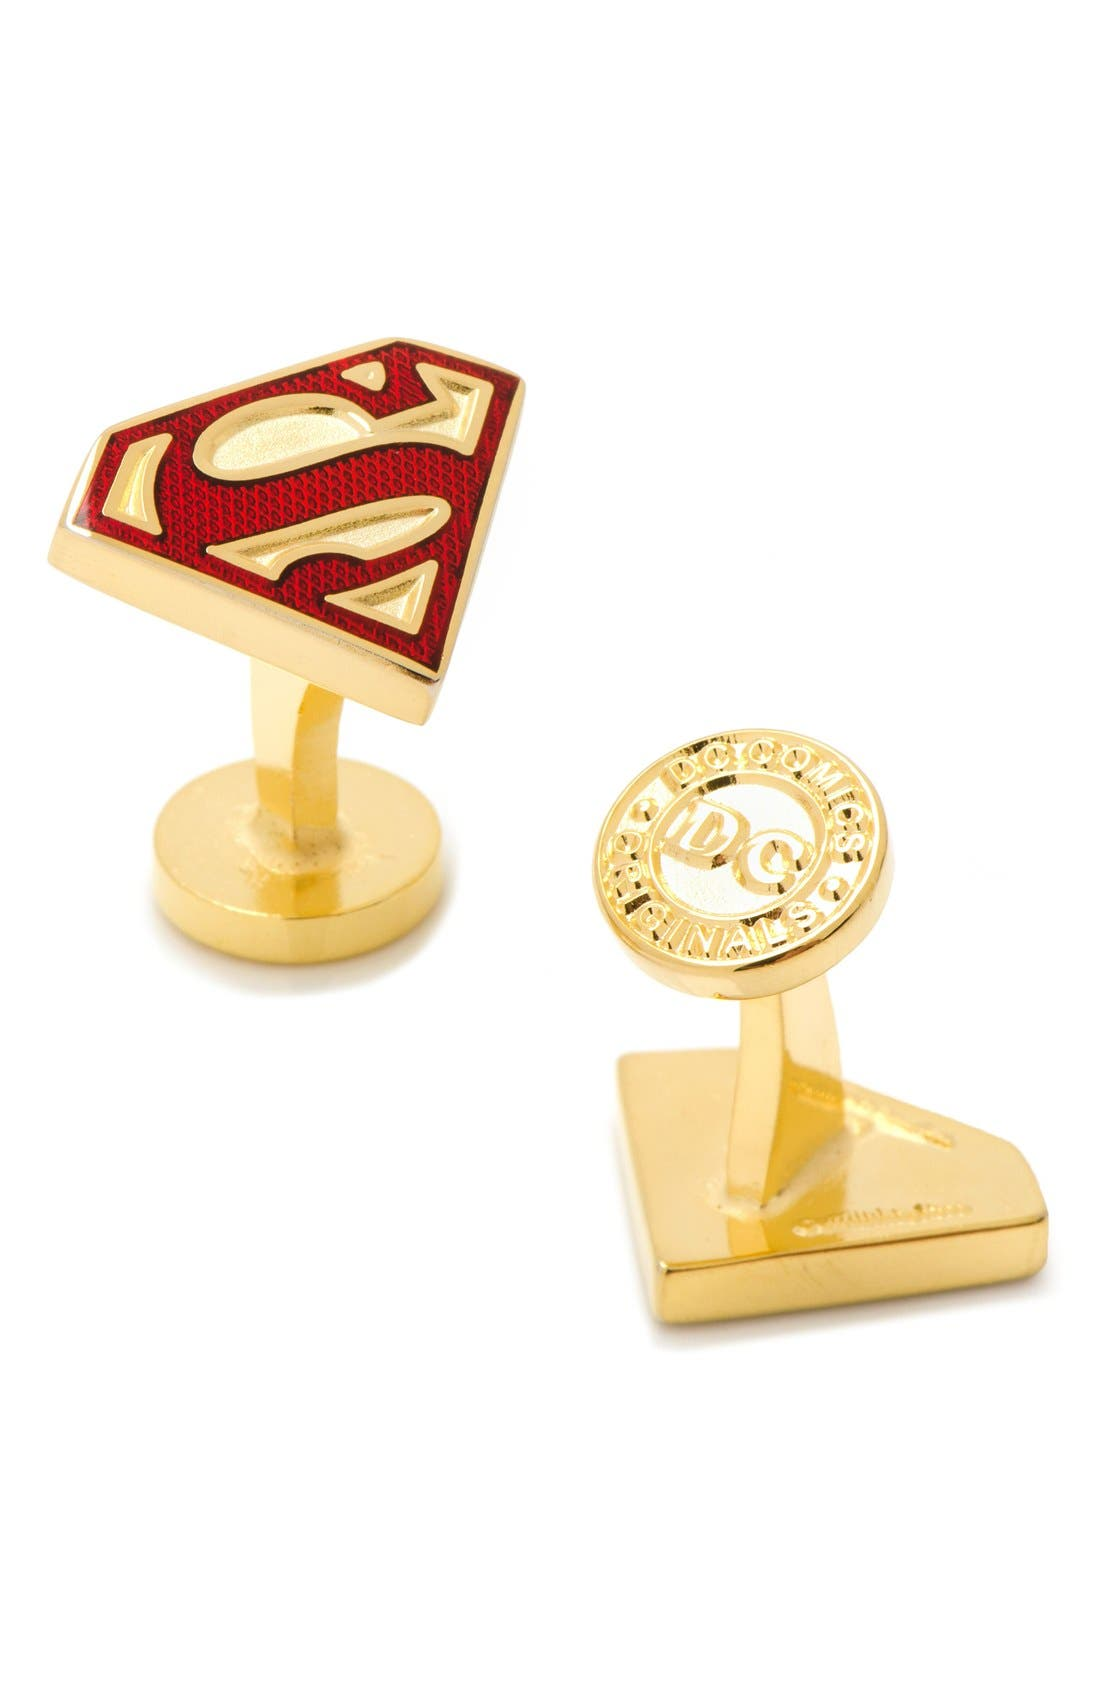 'Superman Shield' Cuff Links,                         Main,                         color, Gold